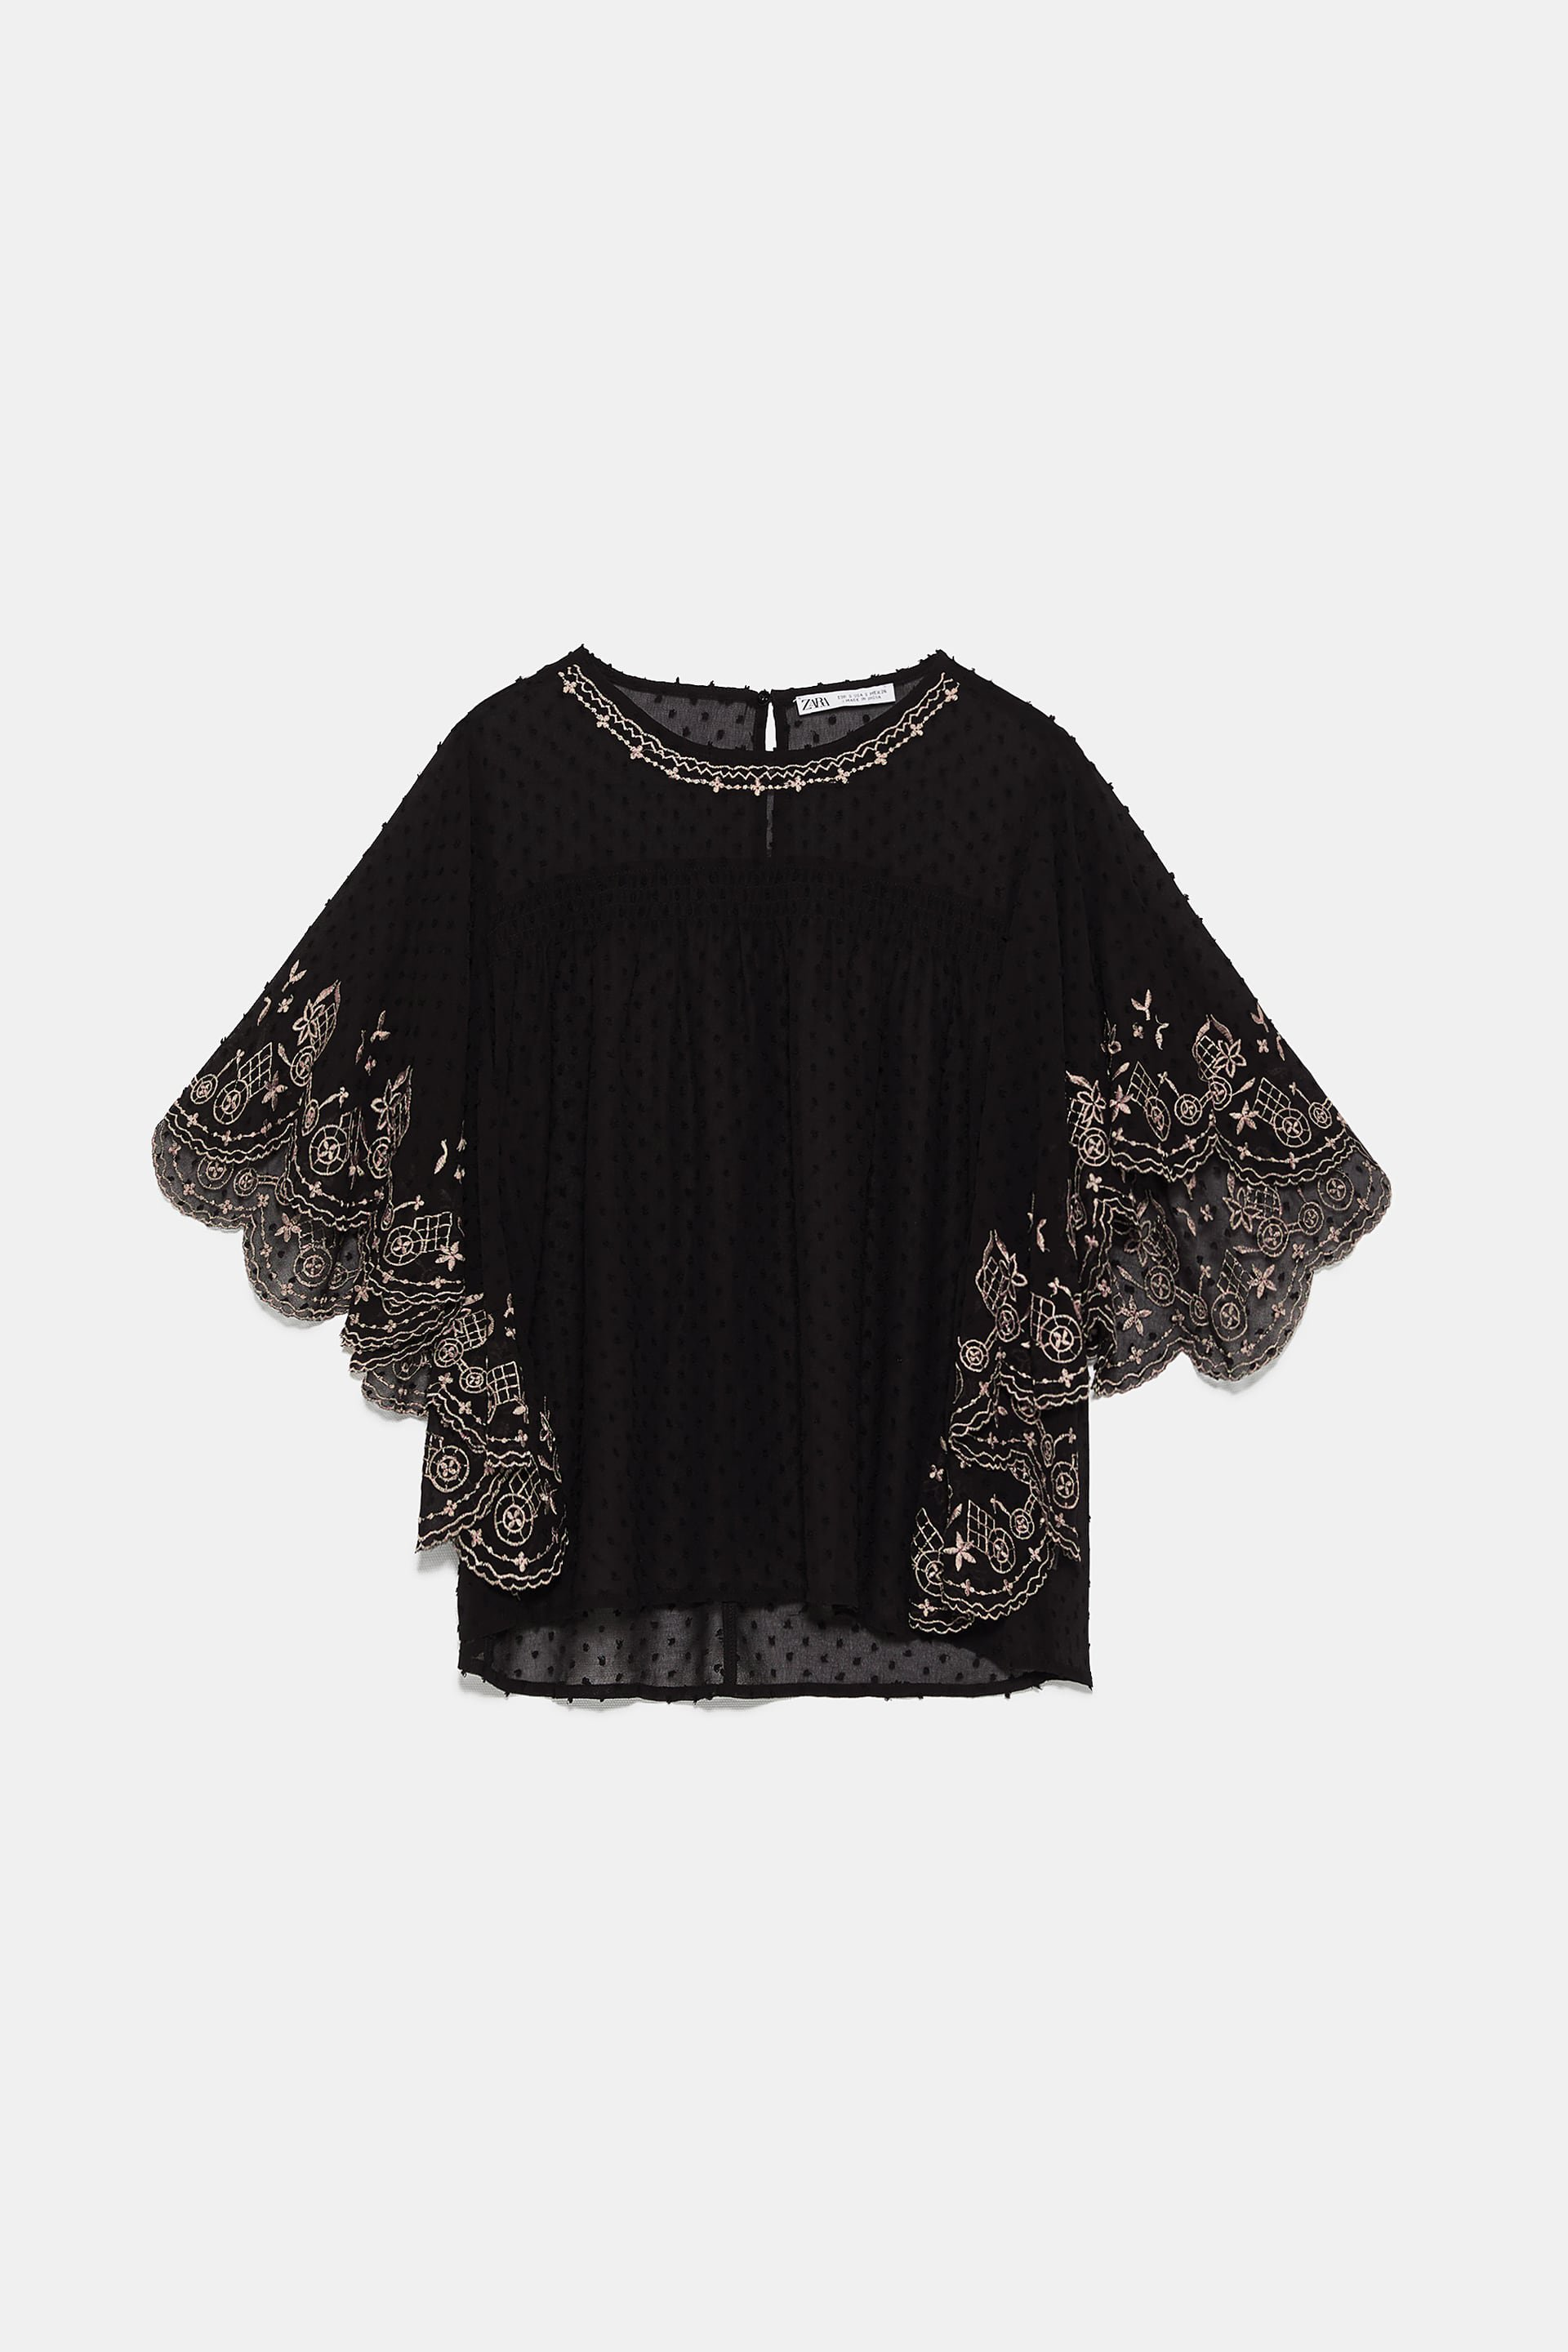 EMBROIDERED SWISS DOT BLOUSE - View All-SHIRTS   BLOUSES-WOMAN   ZARA United States